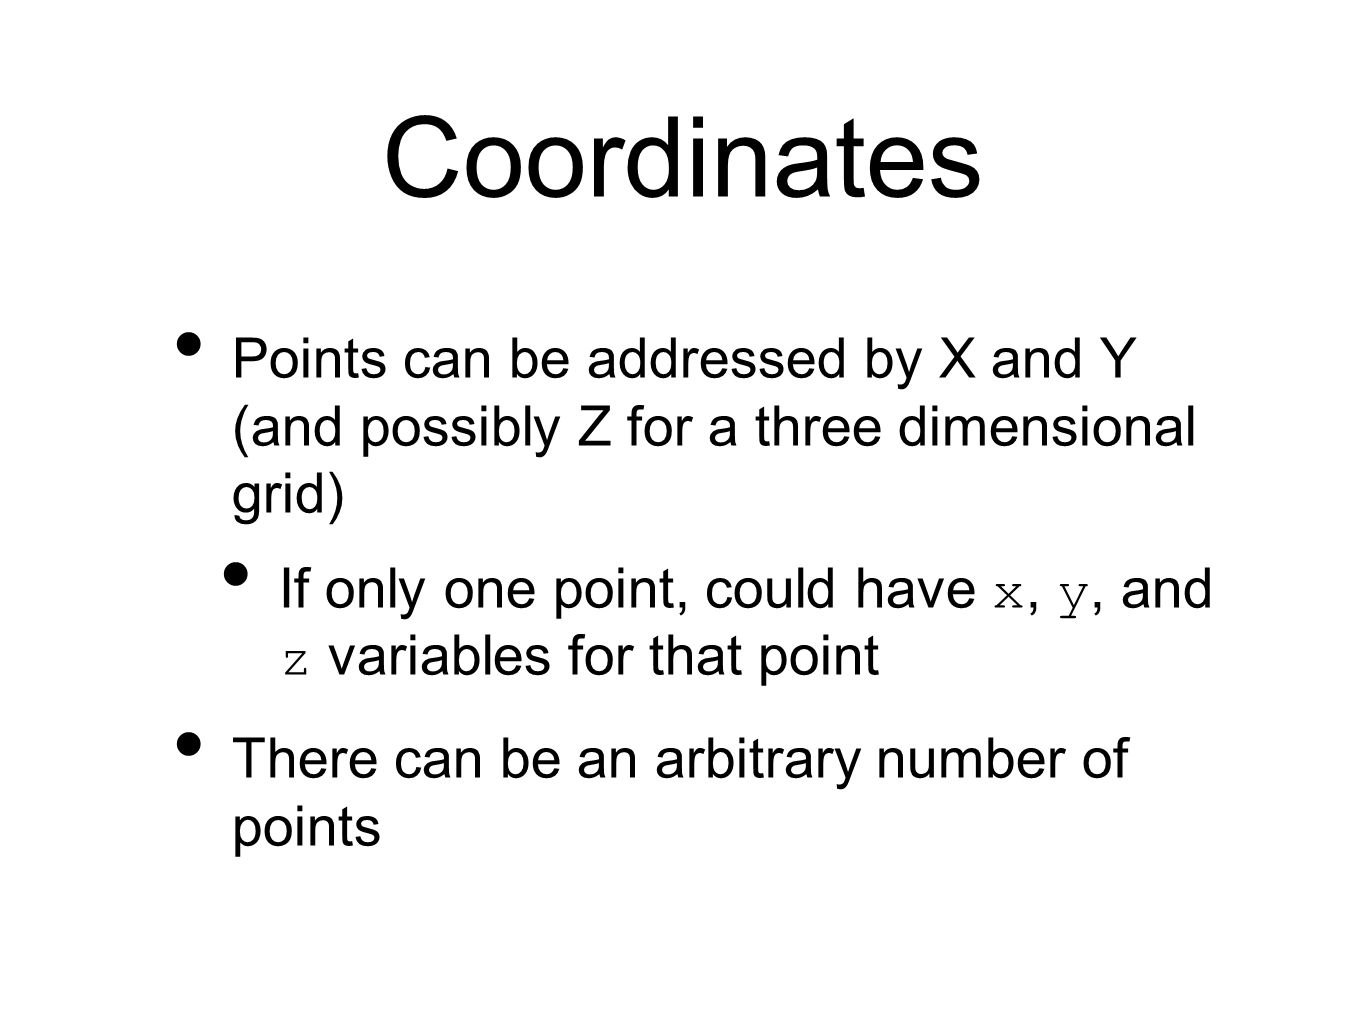 Coordinates Points can be addressed by X and Y (and possibly Z for a three dimensional grid) If only one point, could have x, y, and z variables for that point There can be an arbitrary number of points